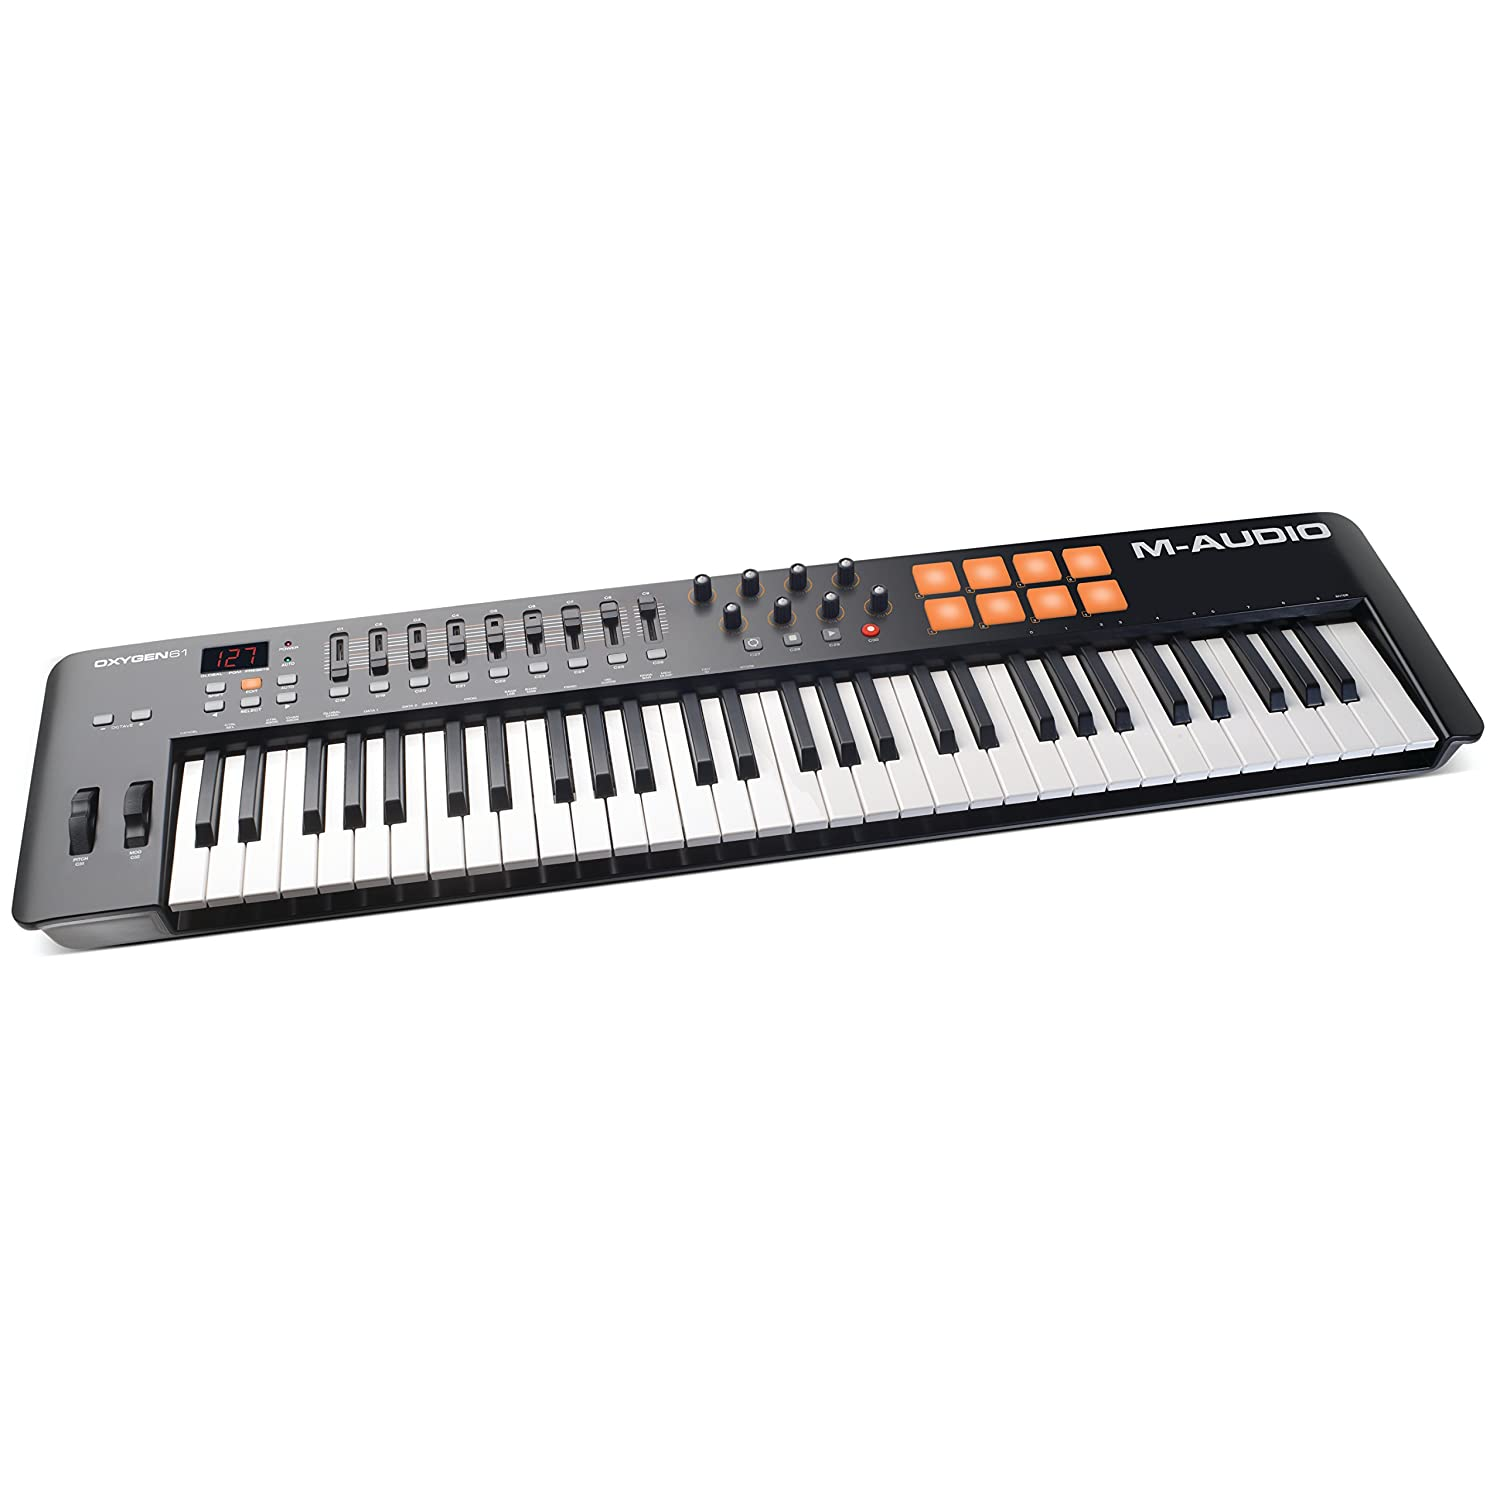 M-Audio Oxygen 61 IV | 61-Key USB/MIDI Keyboard with Eight Trigger Pads,  Studio Production/Performance Ready Controls Plus VIP 3 and Software  Package